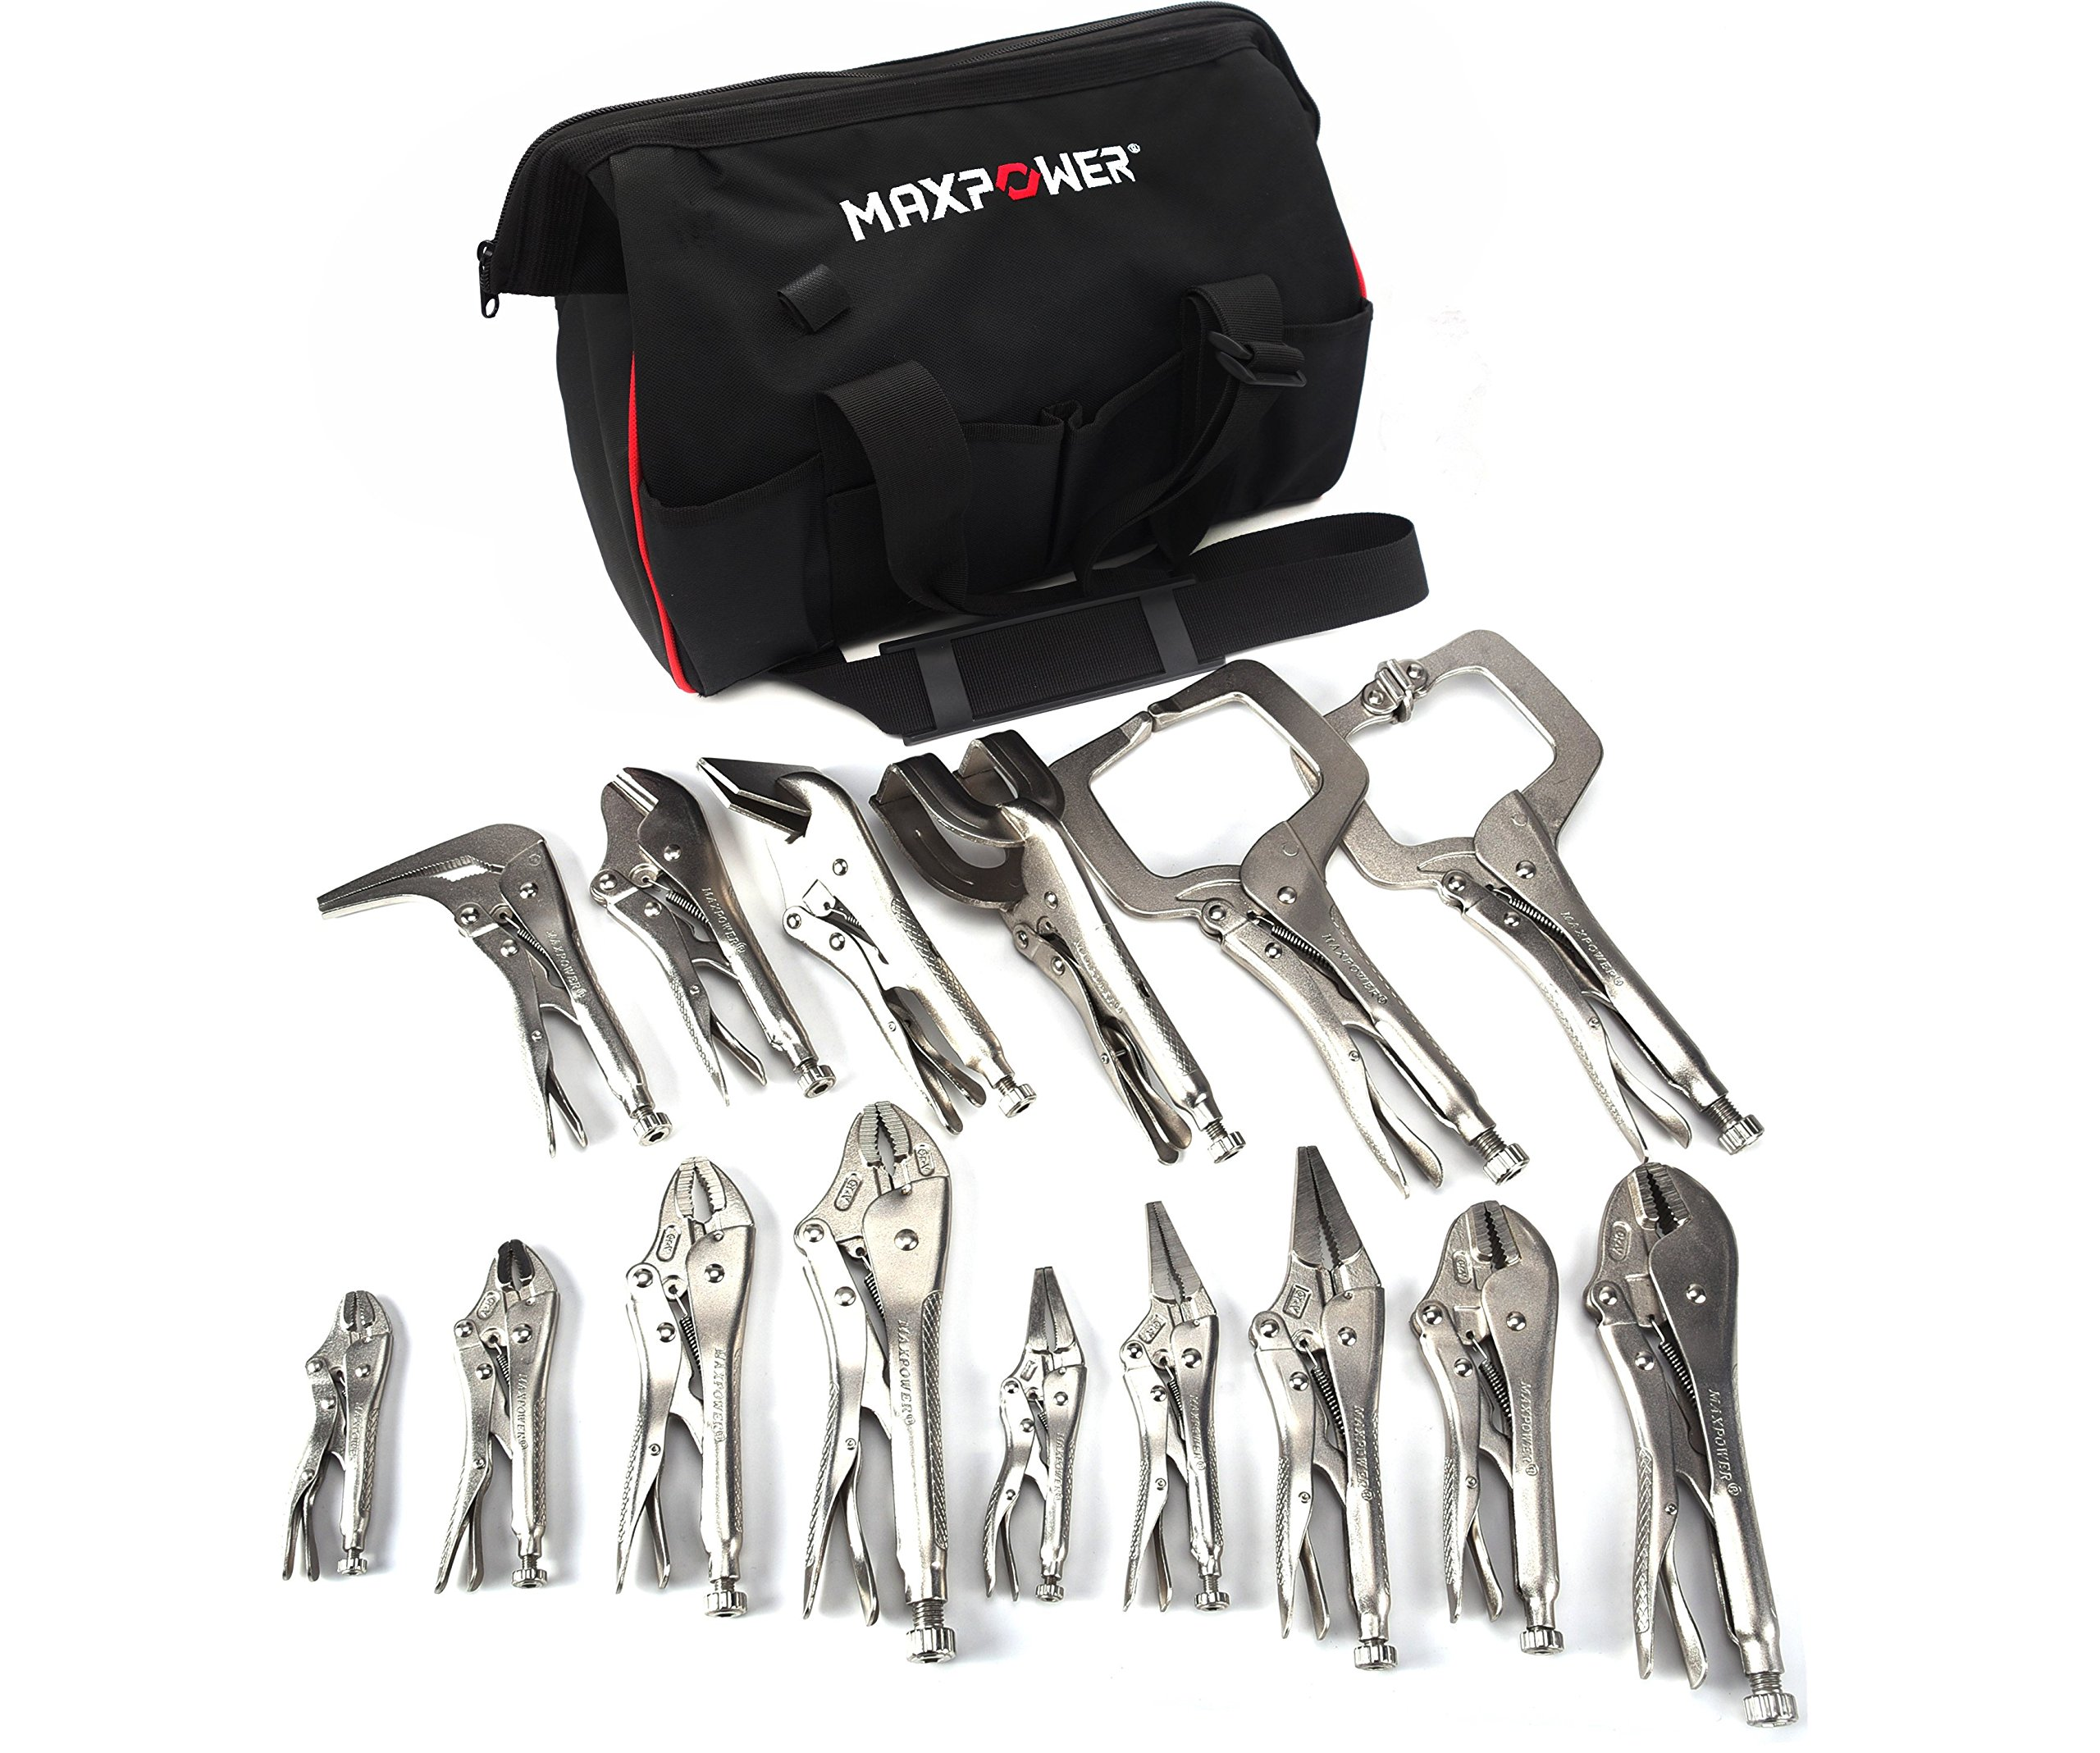 MAXPOWER 15 Piece Locking Pliers Set, Complete locking pliers set for all purposes in Wide Open Mouth Tool Bag by MAXPOWER